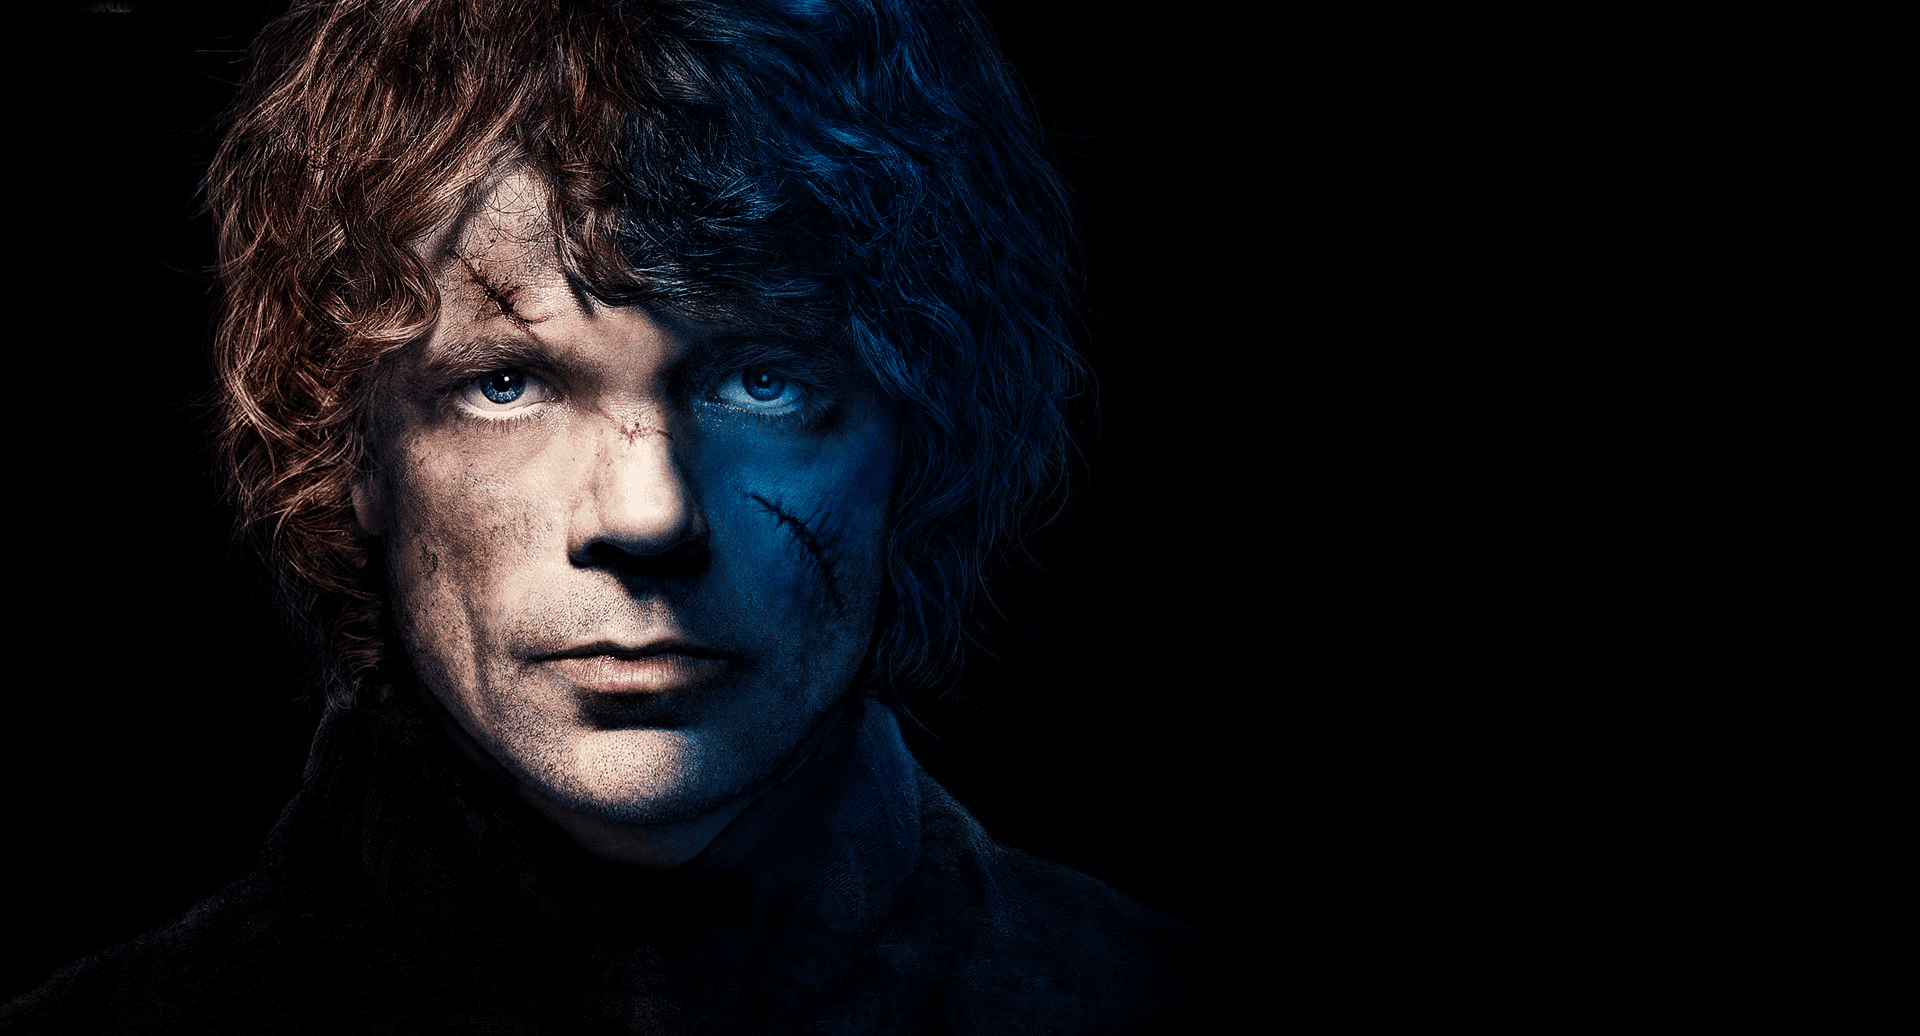 tyrion lannister actor